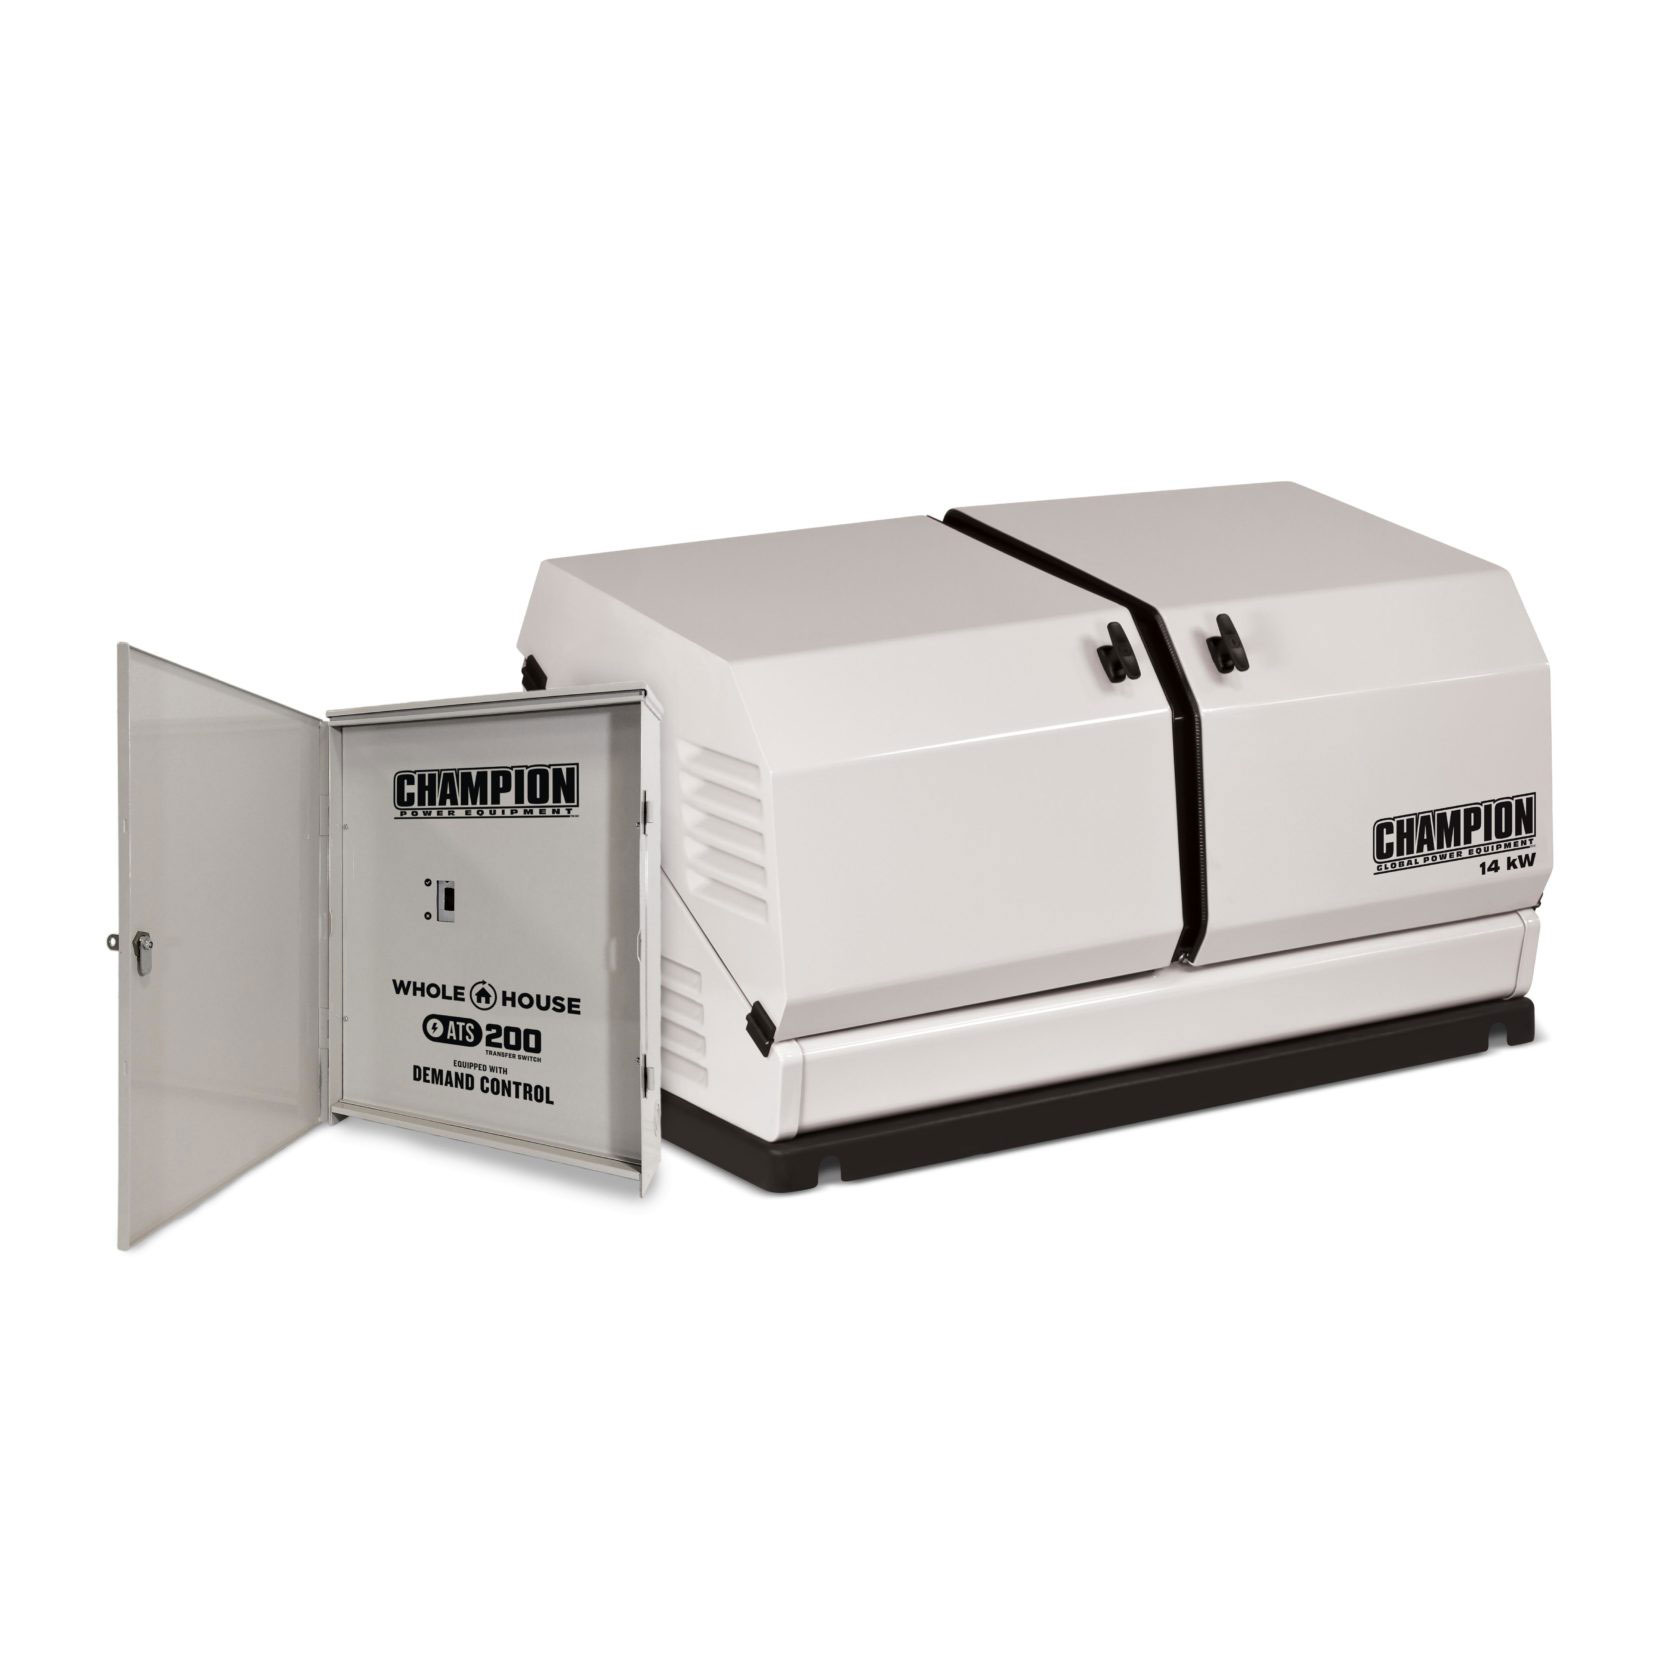 Champion 100294 14-kW Home Standby Generator with 200-Amp Whole House Automatic Transfer Switch with Demand Control by Champion Power Equipment